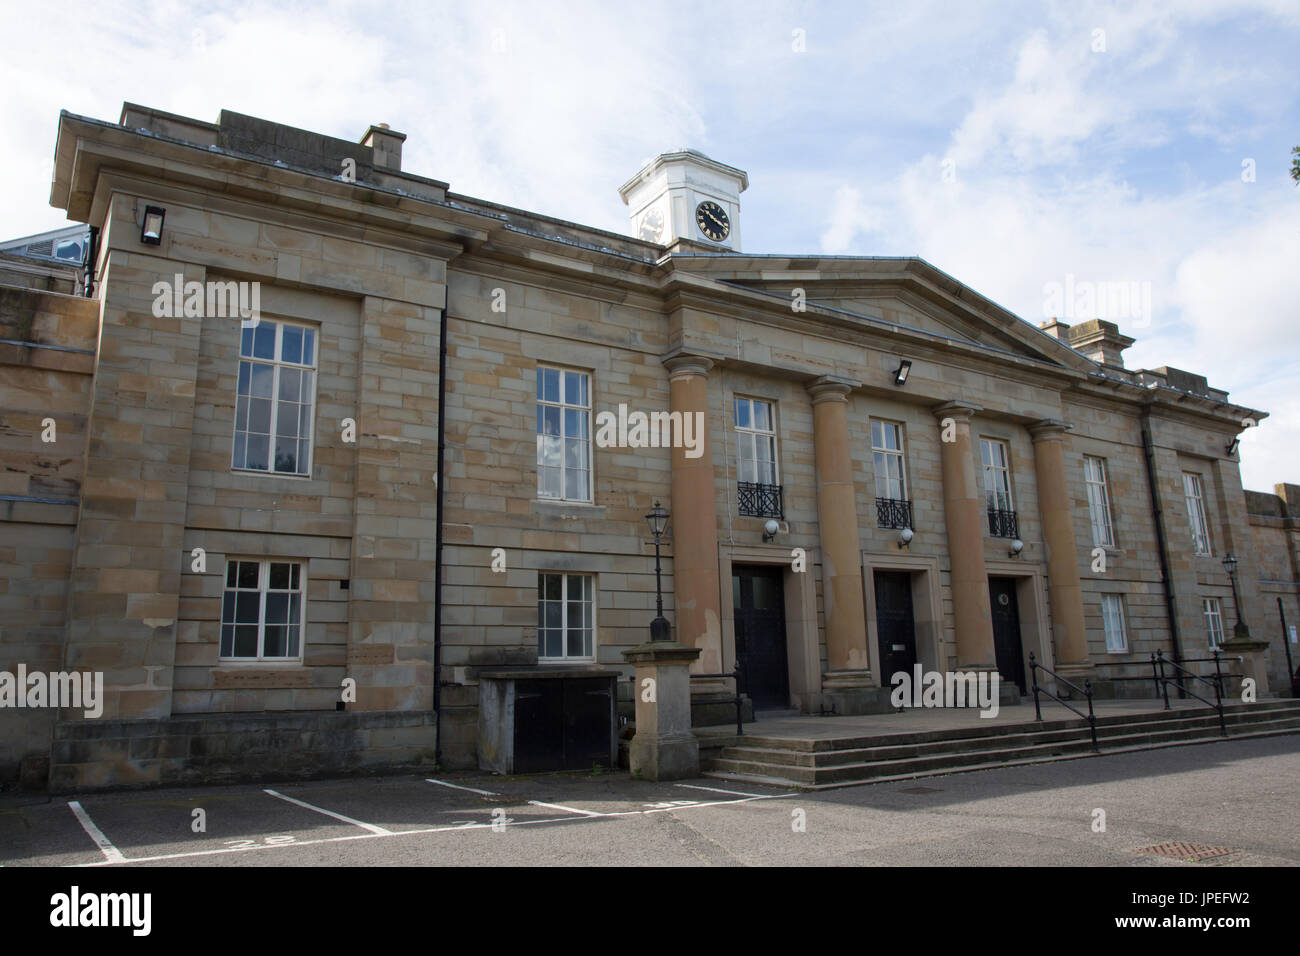 Front facade of Durham Crown Court building - Stock Image